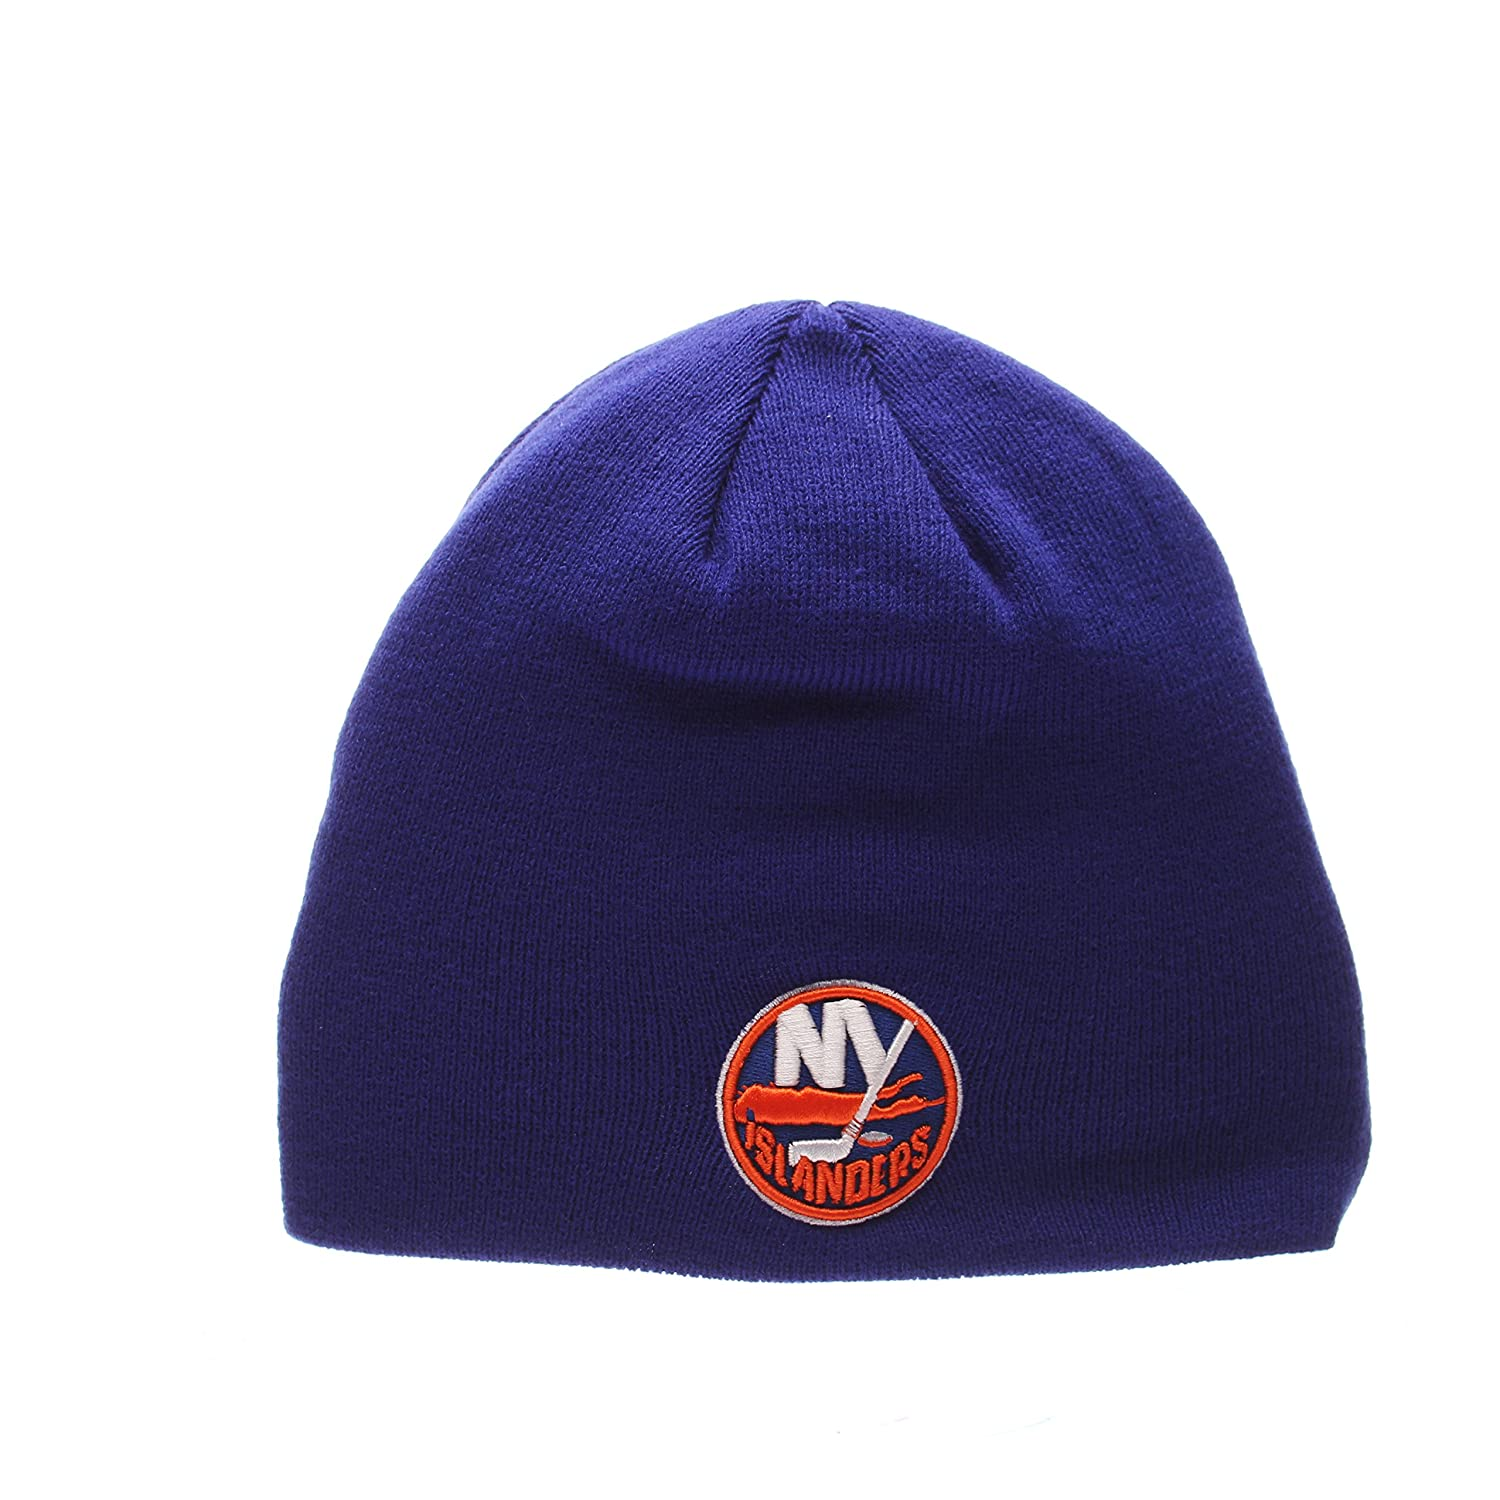 ZHATS New York Islanders Royal Edge Skull Cap NHL Cuffless Winter Knit Beanie Toque Hat